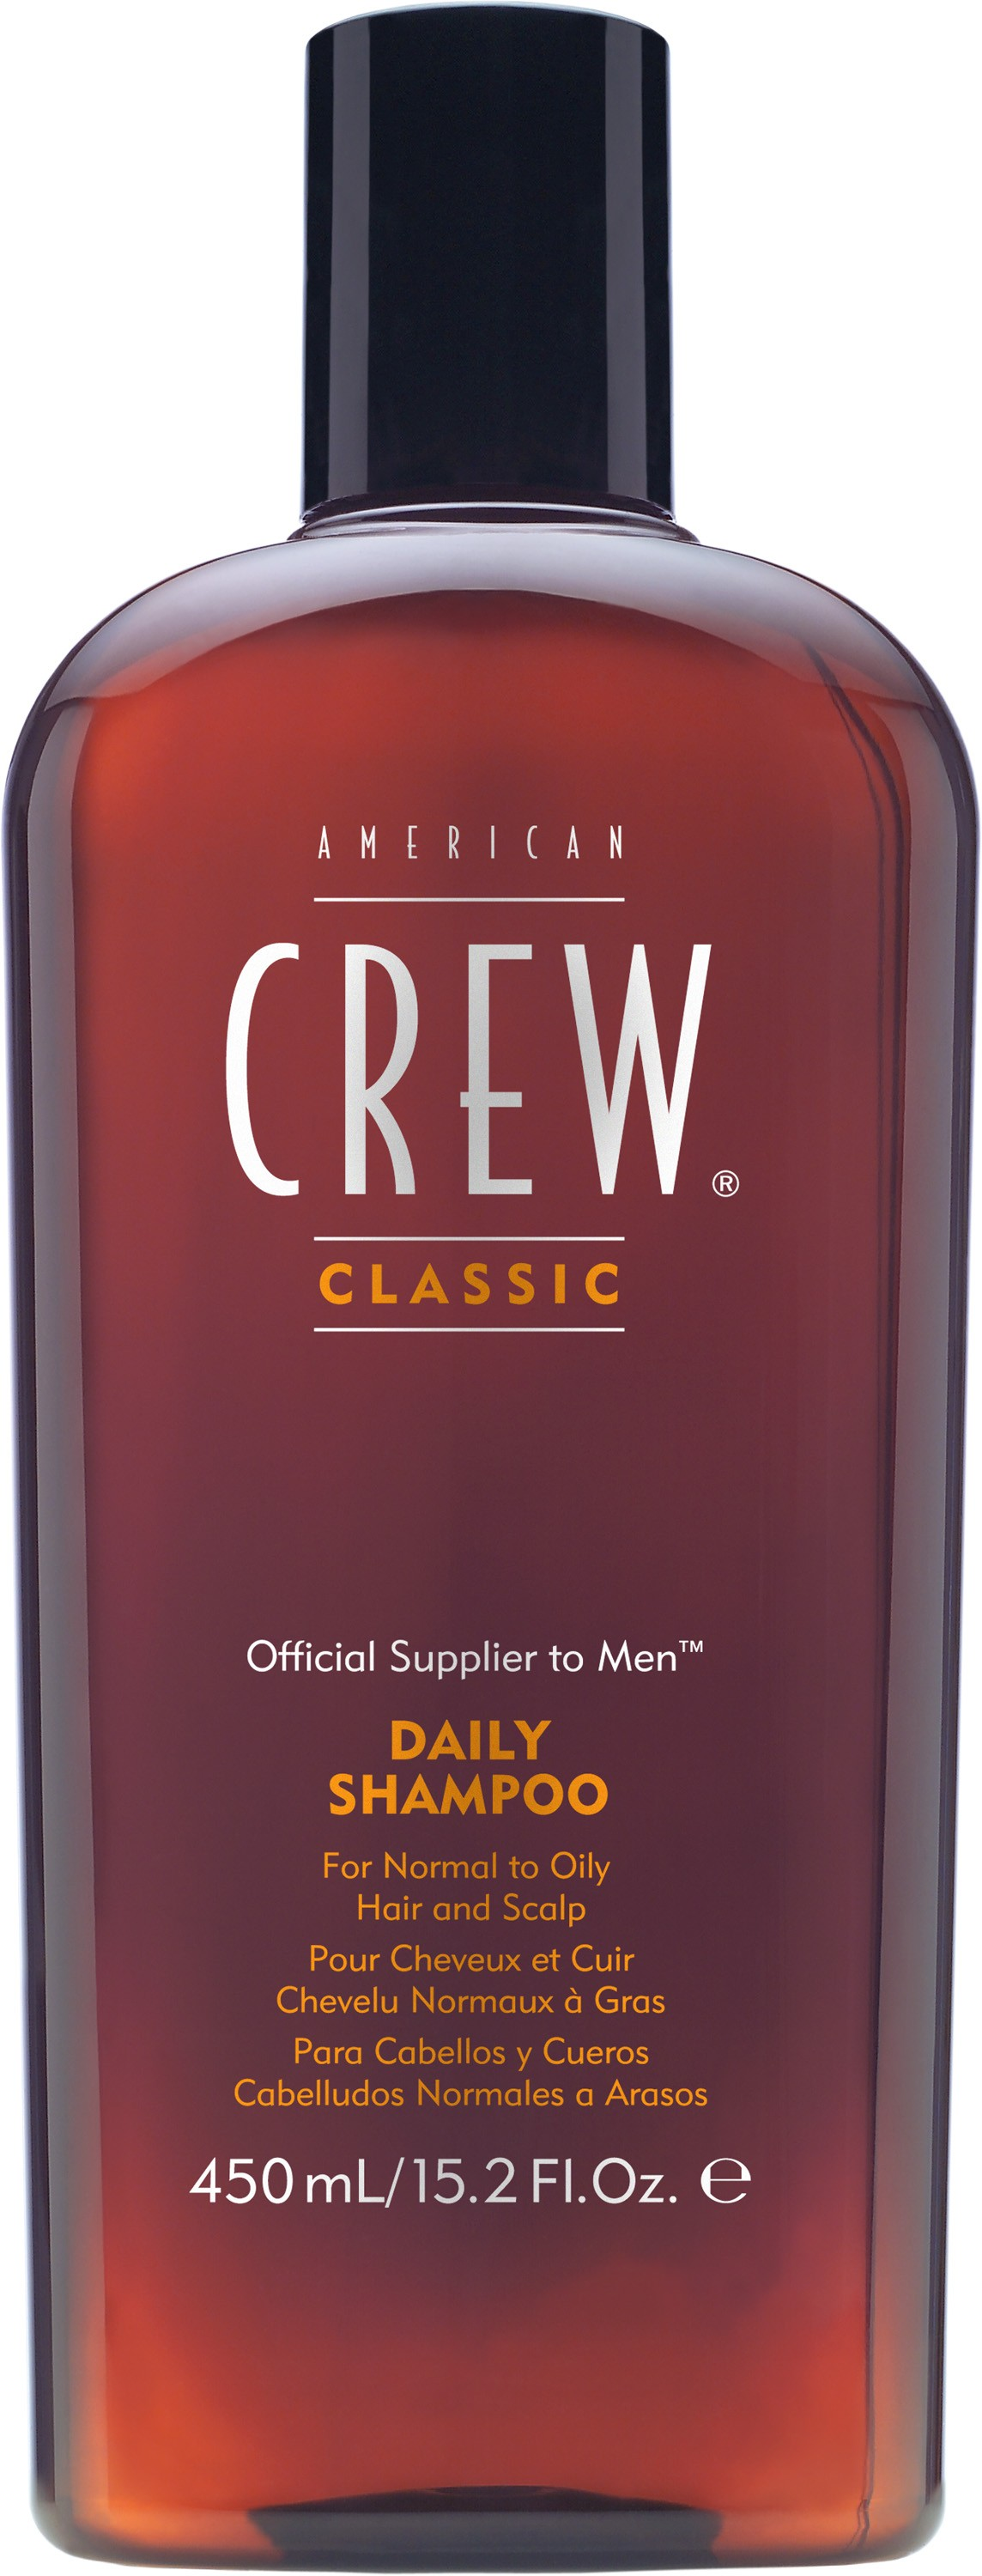 American Crew Daily Shampoo - normál hajra 450 ml